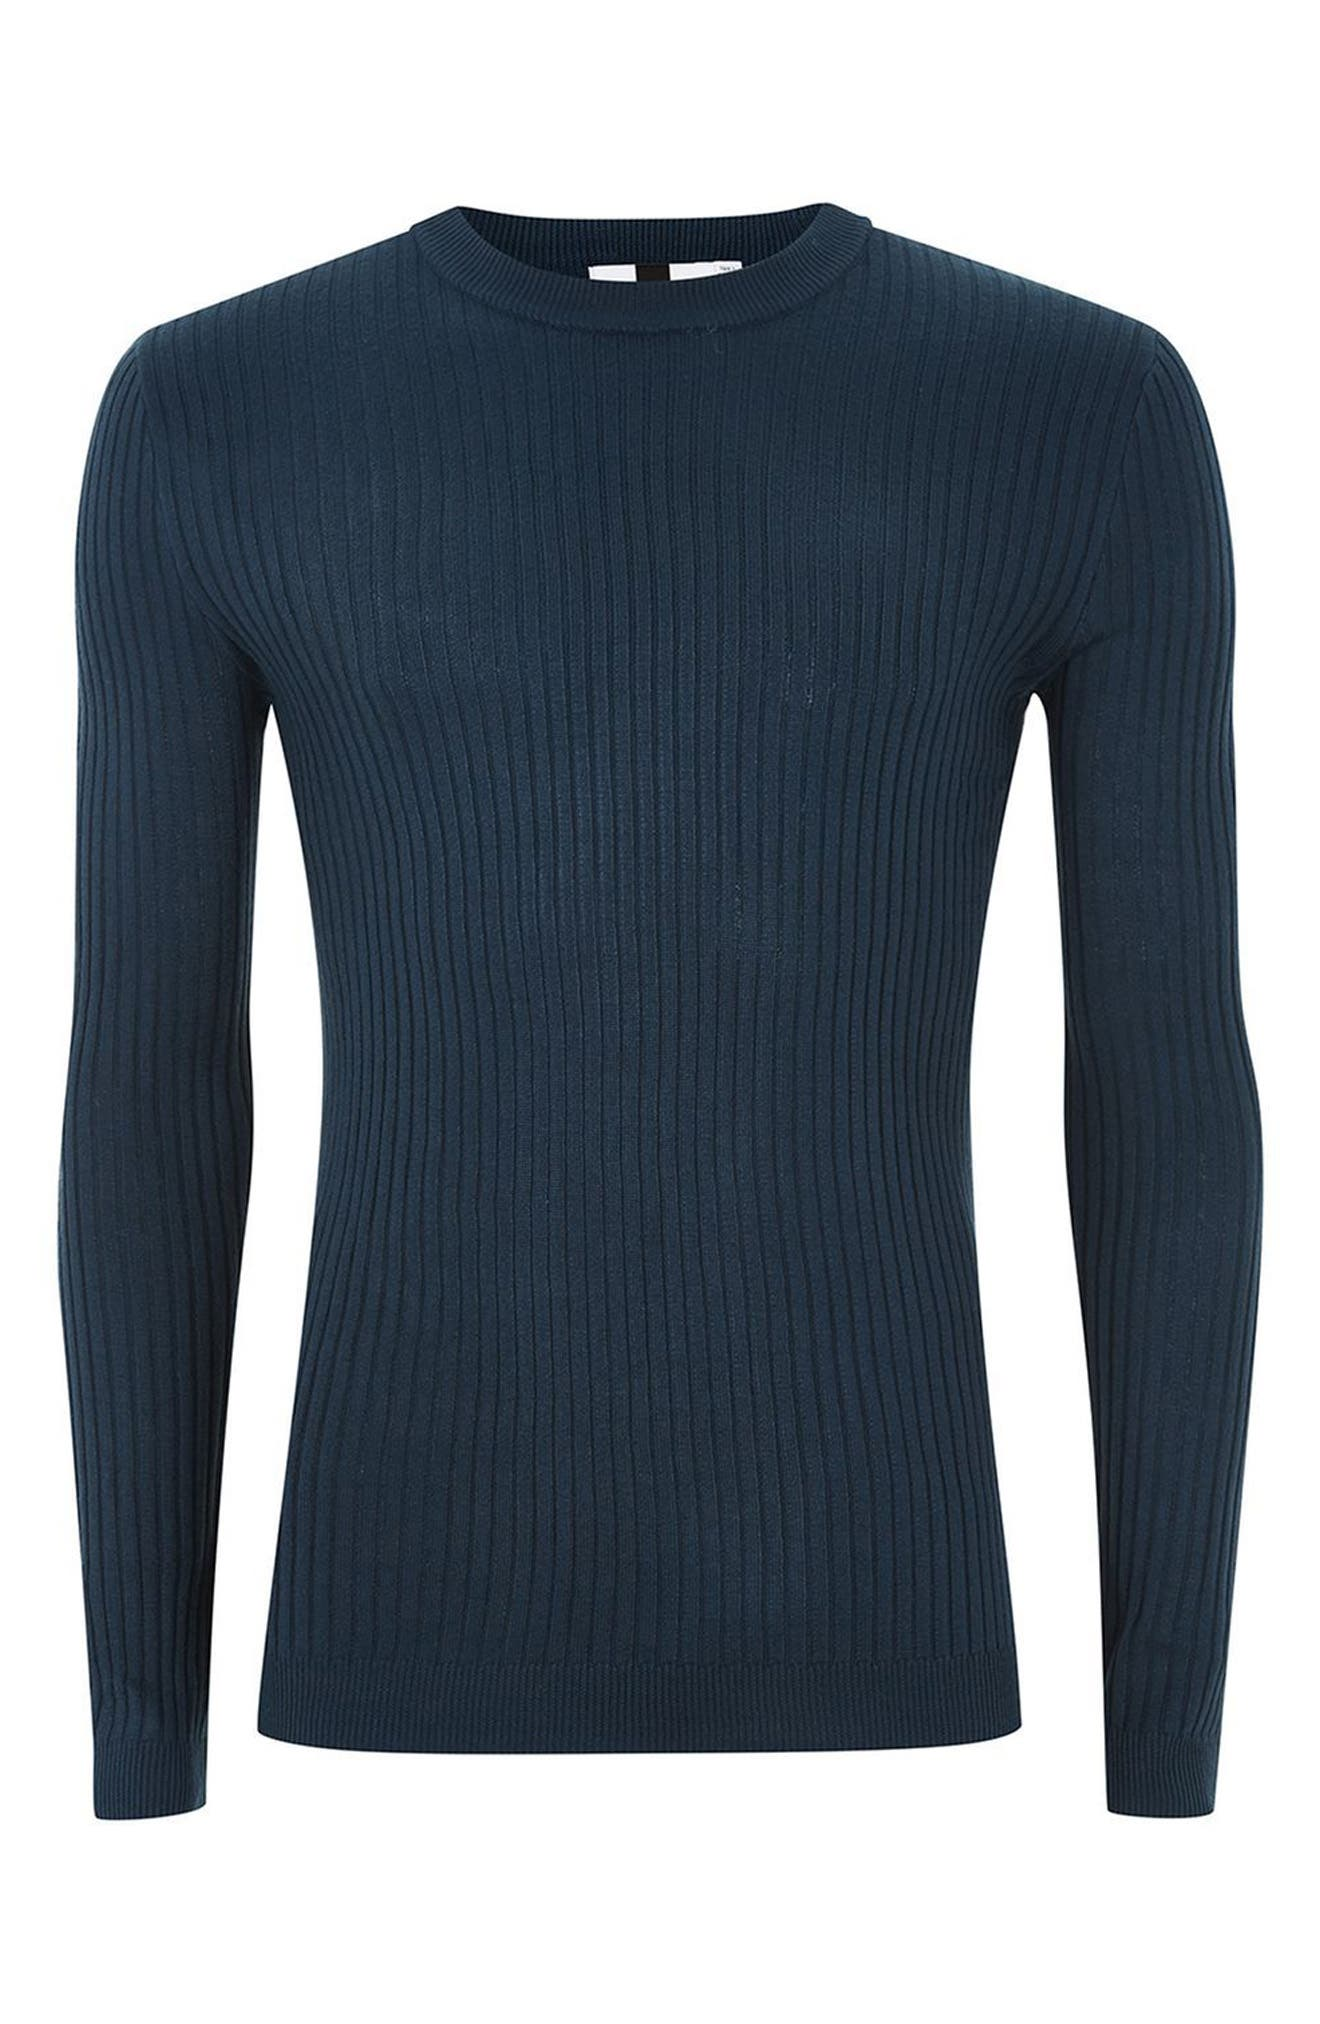 Ribbed Muscle Fit Sweater,                             Alternate thumbnail 4, color,                             420